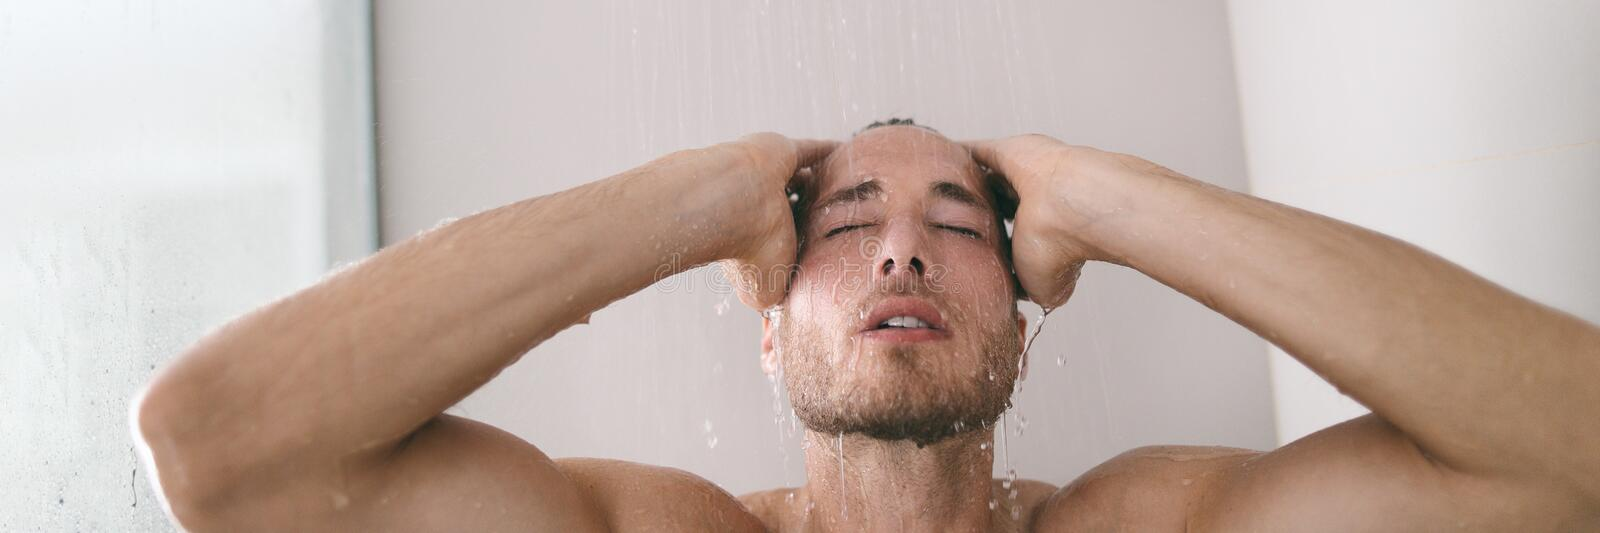 Shower bathroom in luxury hotel or home man taking hot bath washing hair under rainfall water banner panorama.  royalty free stock photography